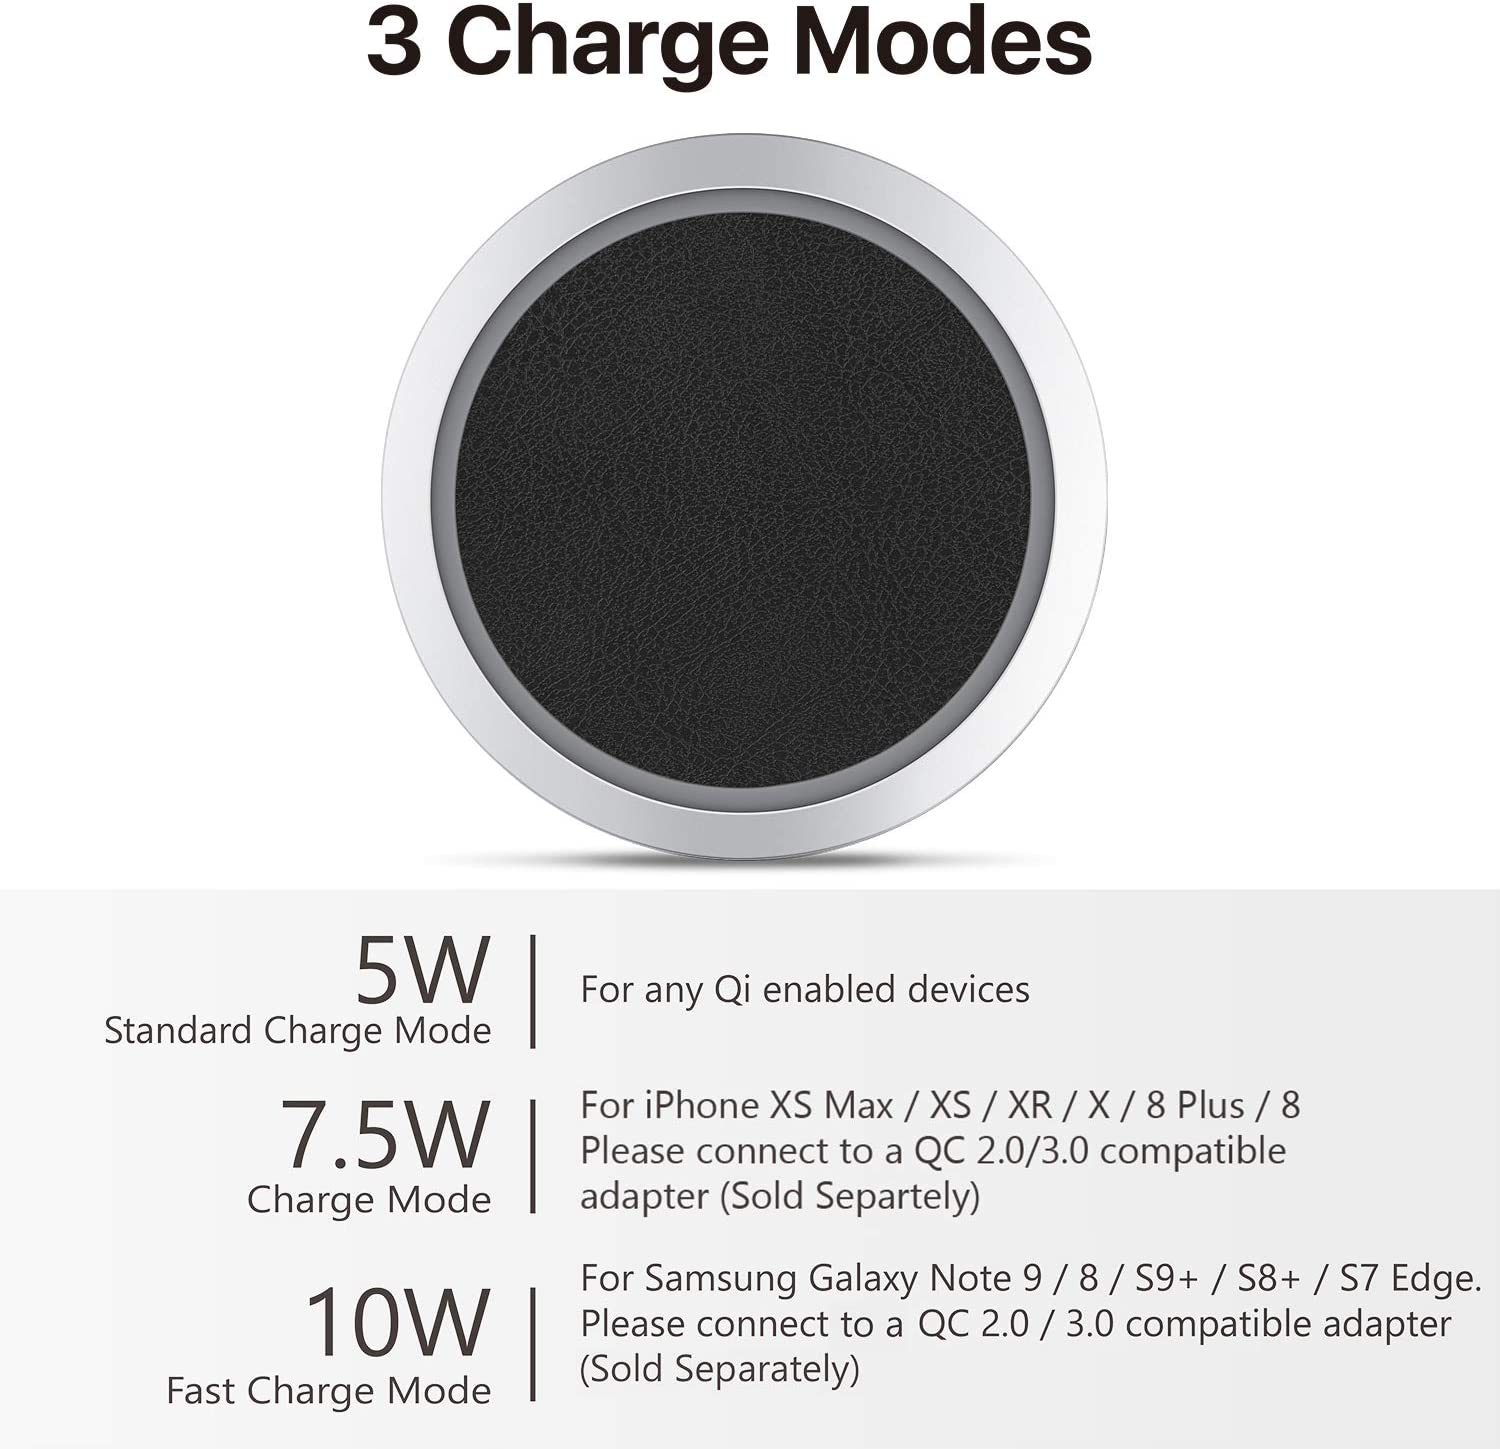 X Galaxy S20 S10 S9 S8 XS TNP Wireless Charger 10W Power Pad 8 Xs Max 11 Pro 8 Plus PU Leather 11 Pro Max Premium Note 10 Slim Industrial Dock Station Fast Charging for iPhone 11 XR